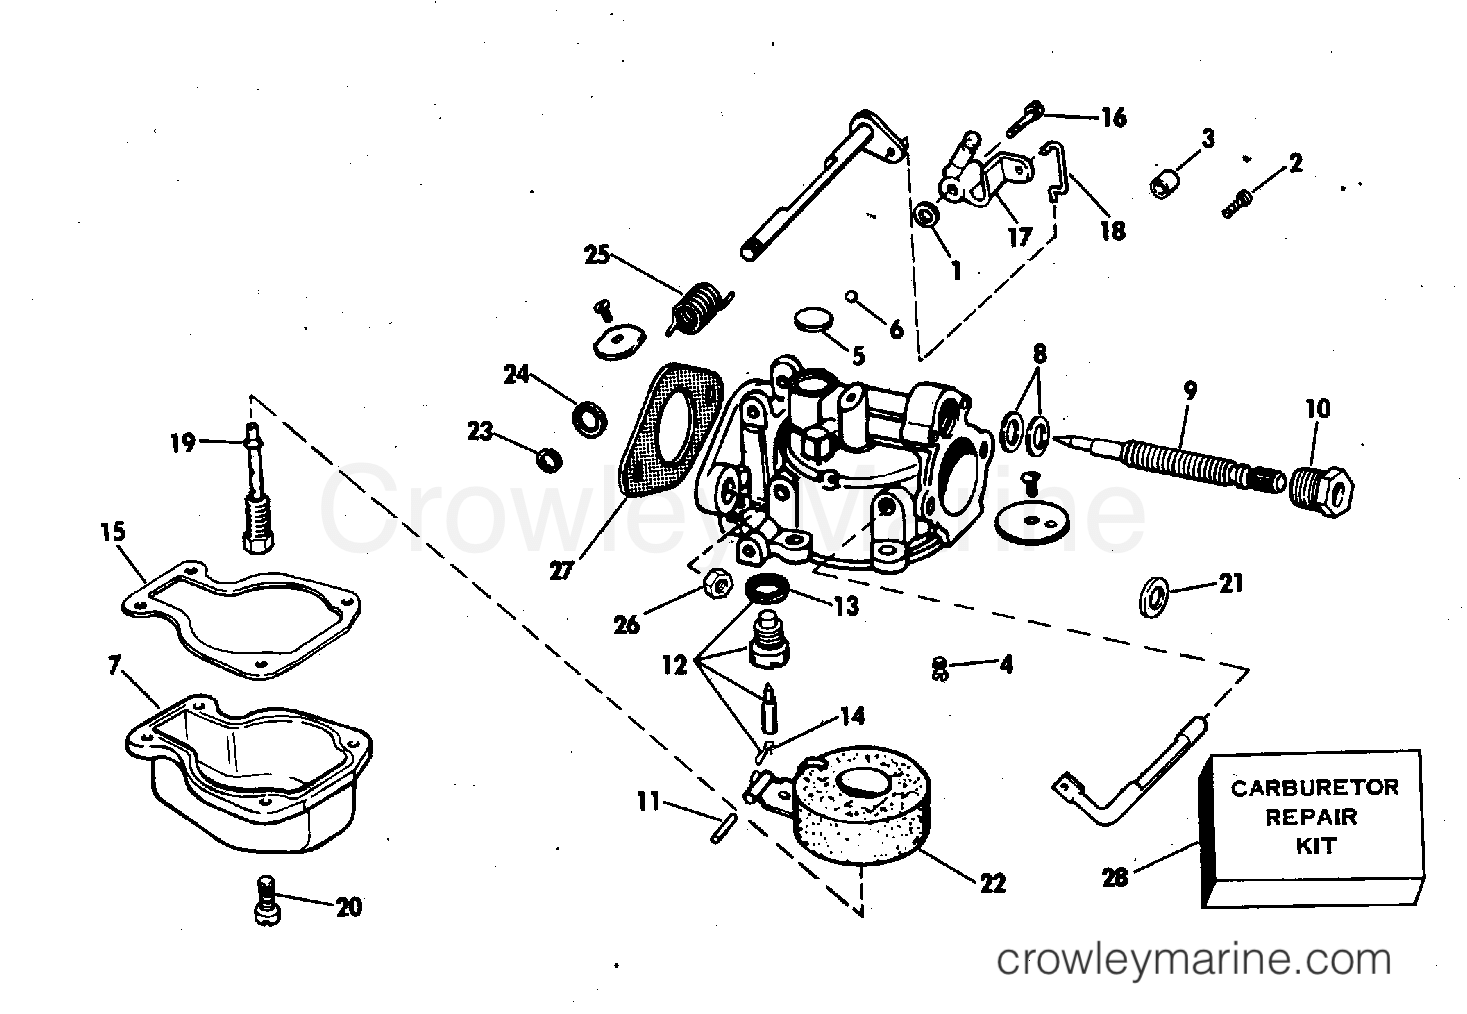 1986 Toyota Pickup Carburetor - Lir Wiring 101 on 22r wiring-diagram, 22r engine compartment, 22r timing marks, 22r intake manifold, 20r emissions diagram,